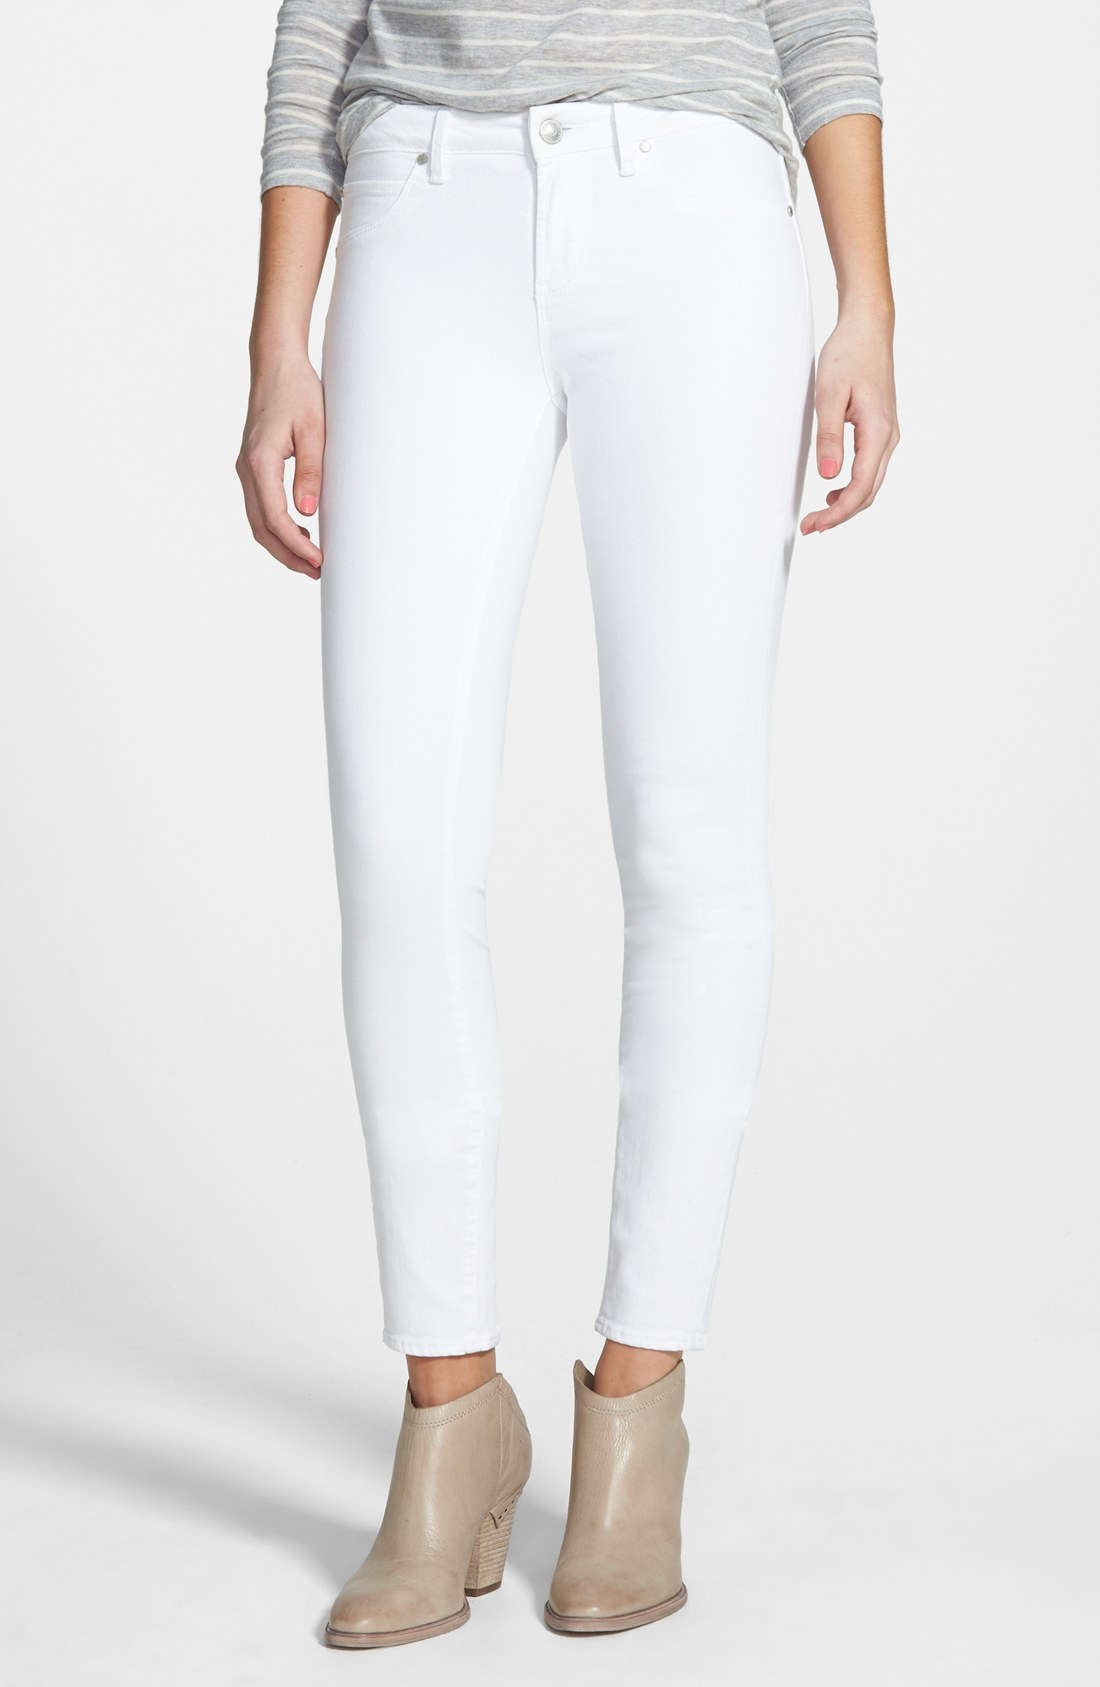 fa286f48d7 Articles of Society  Sarah  Skinny Jeans (White)